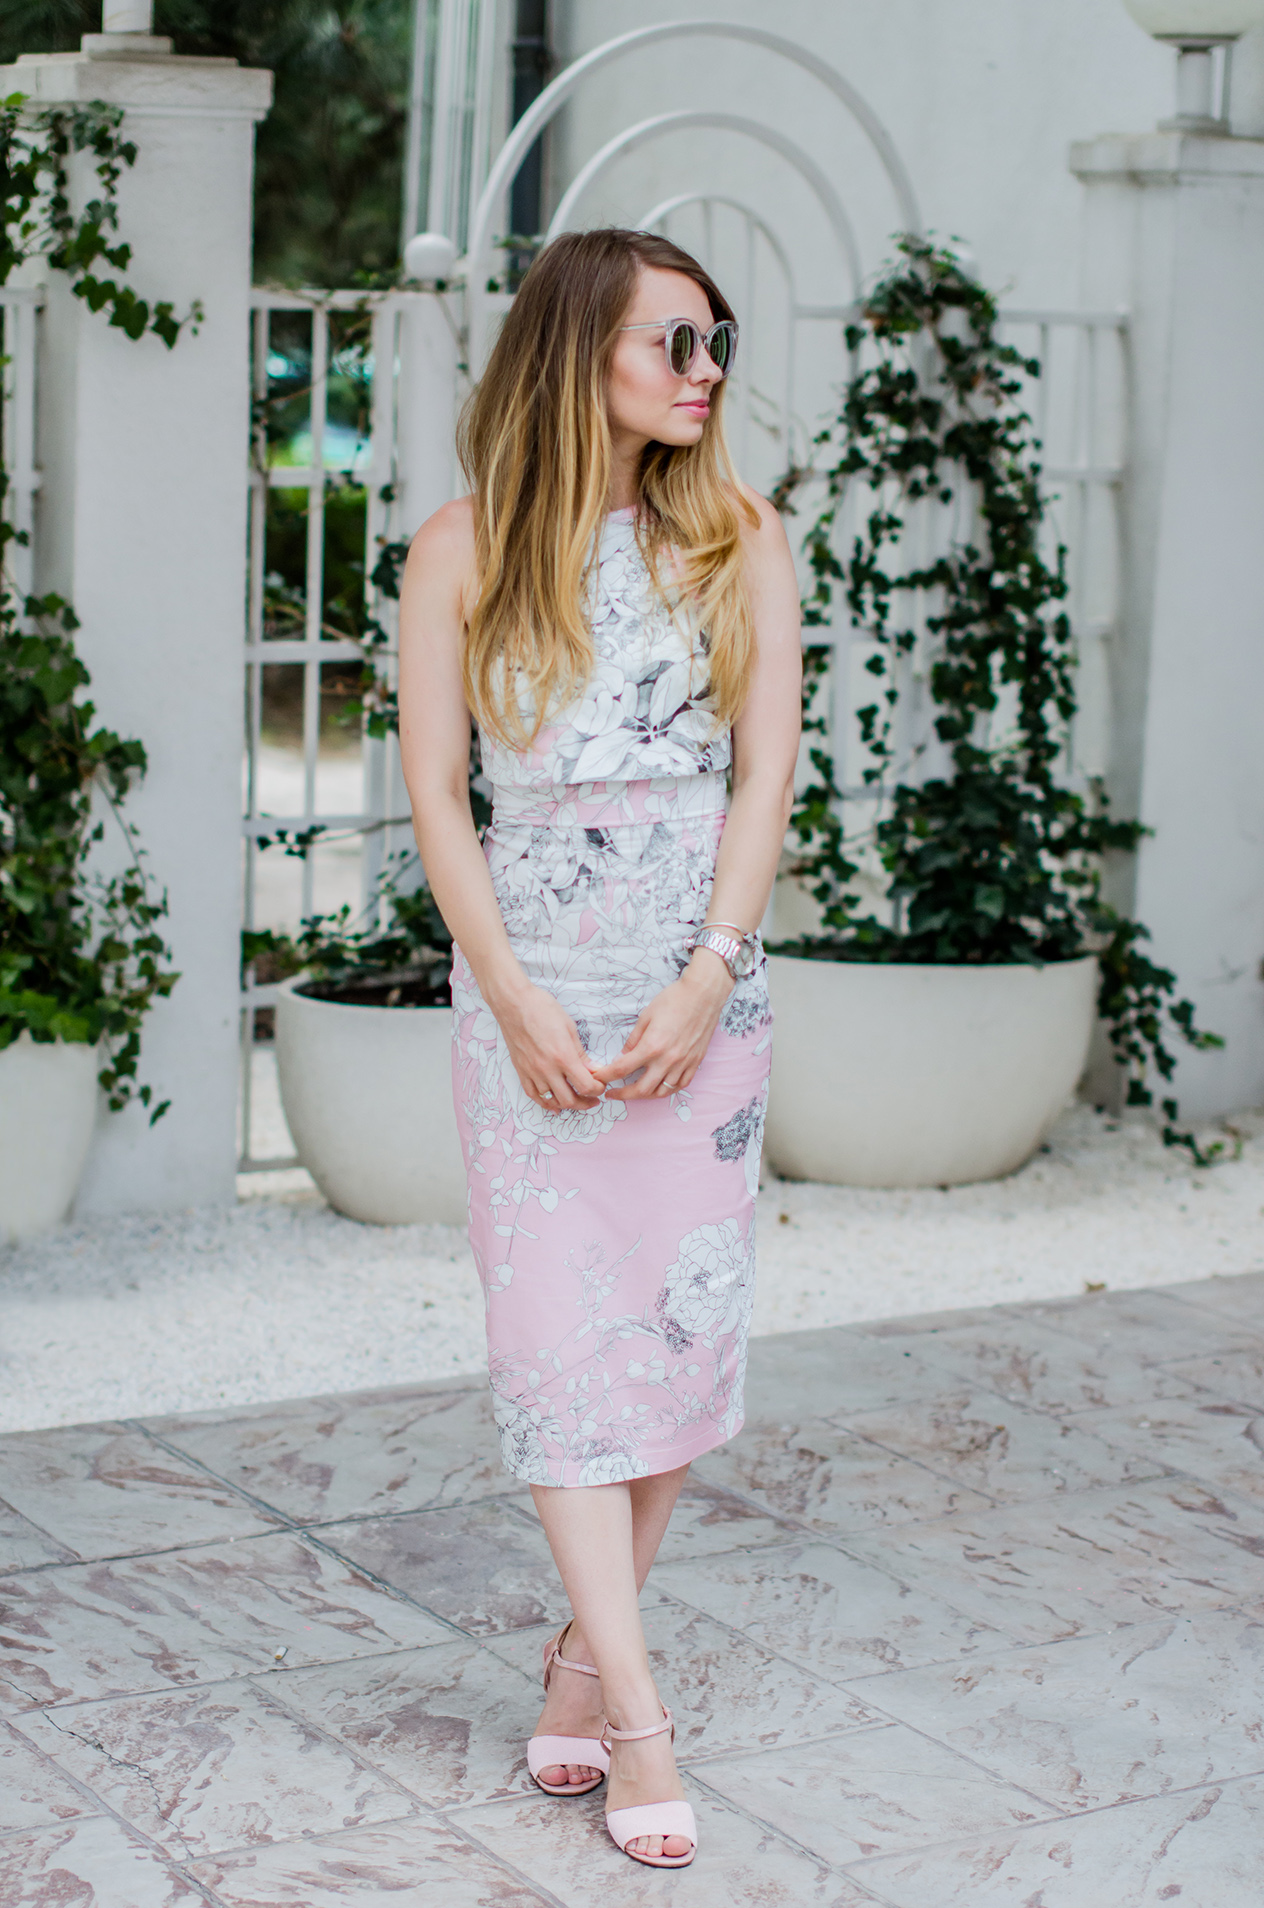 bodycon-midi-pink-dress-pink-sandals-zerouv-sunglasses-fashion-pink-wish-blog (2)